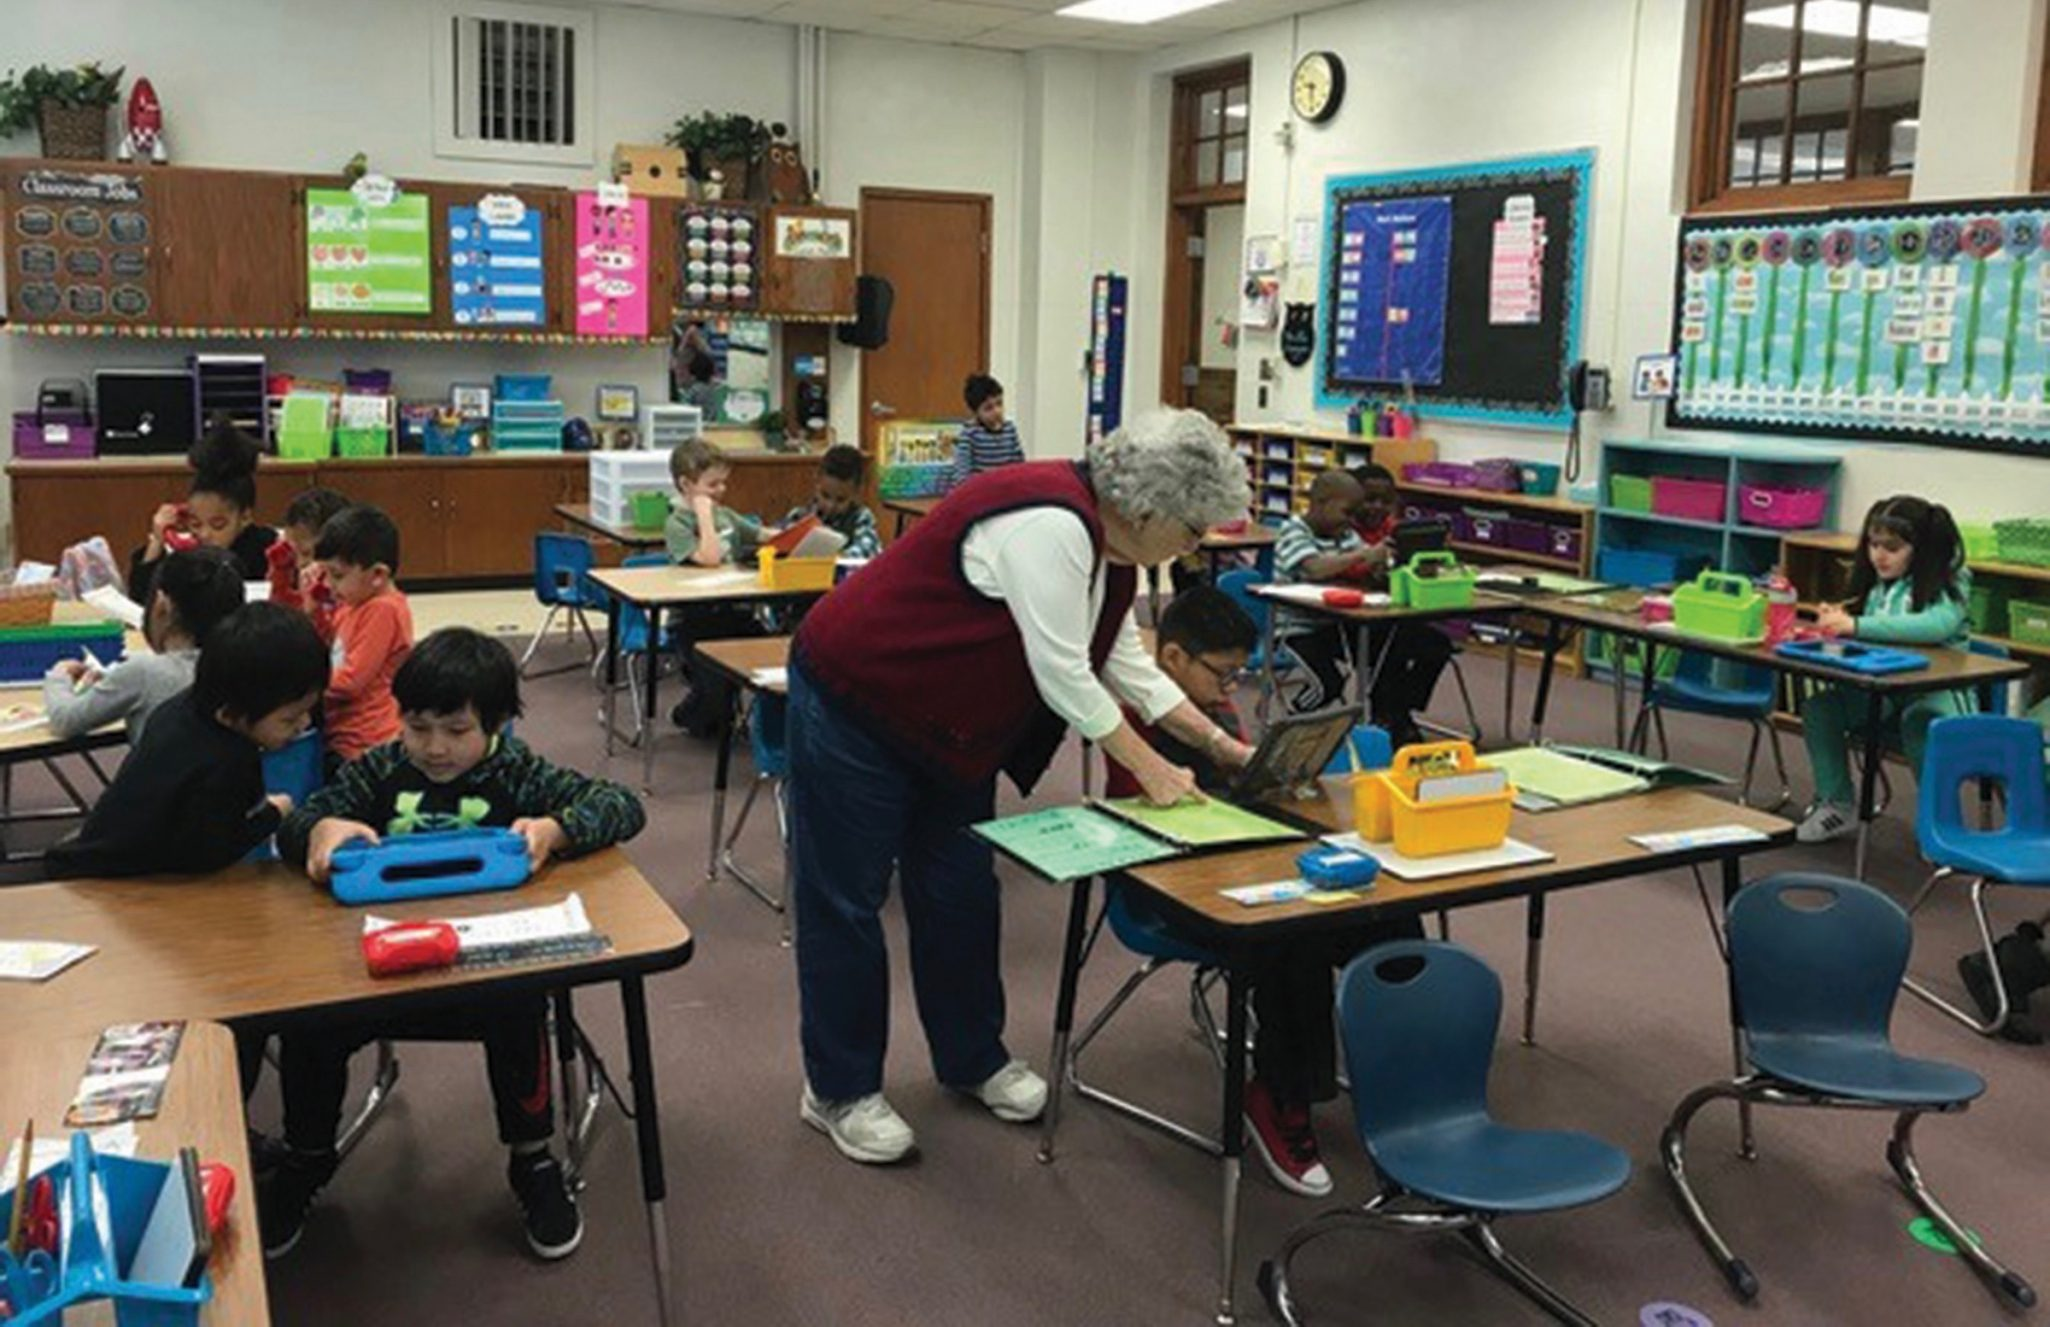 A Grand Lodge resident volunteering at a local elementary school